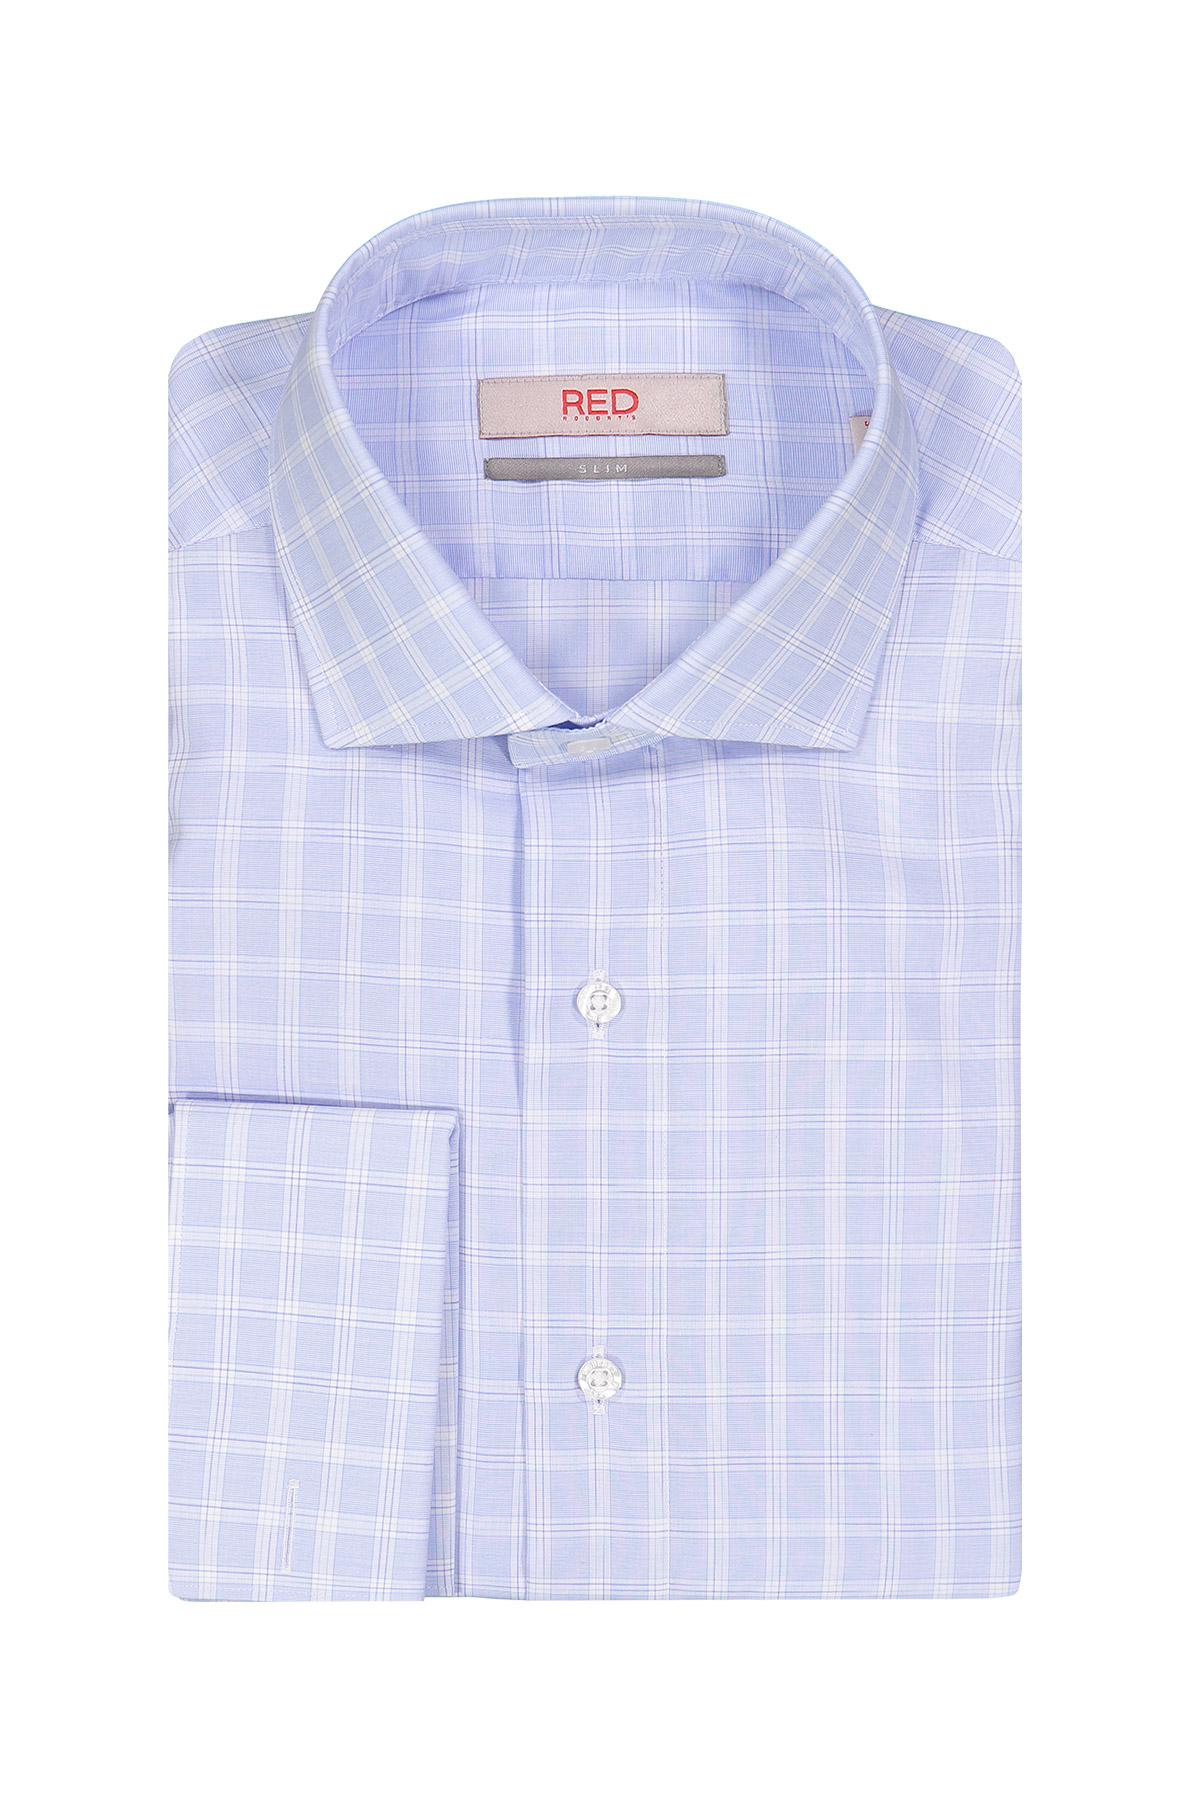 Camisa Robert´s Red, slim fit, celeste a cuadros, puño doble.